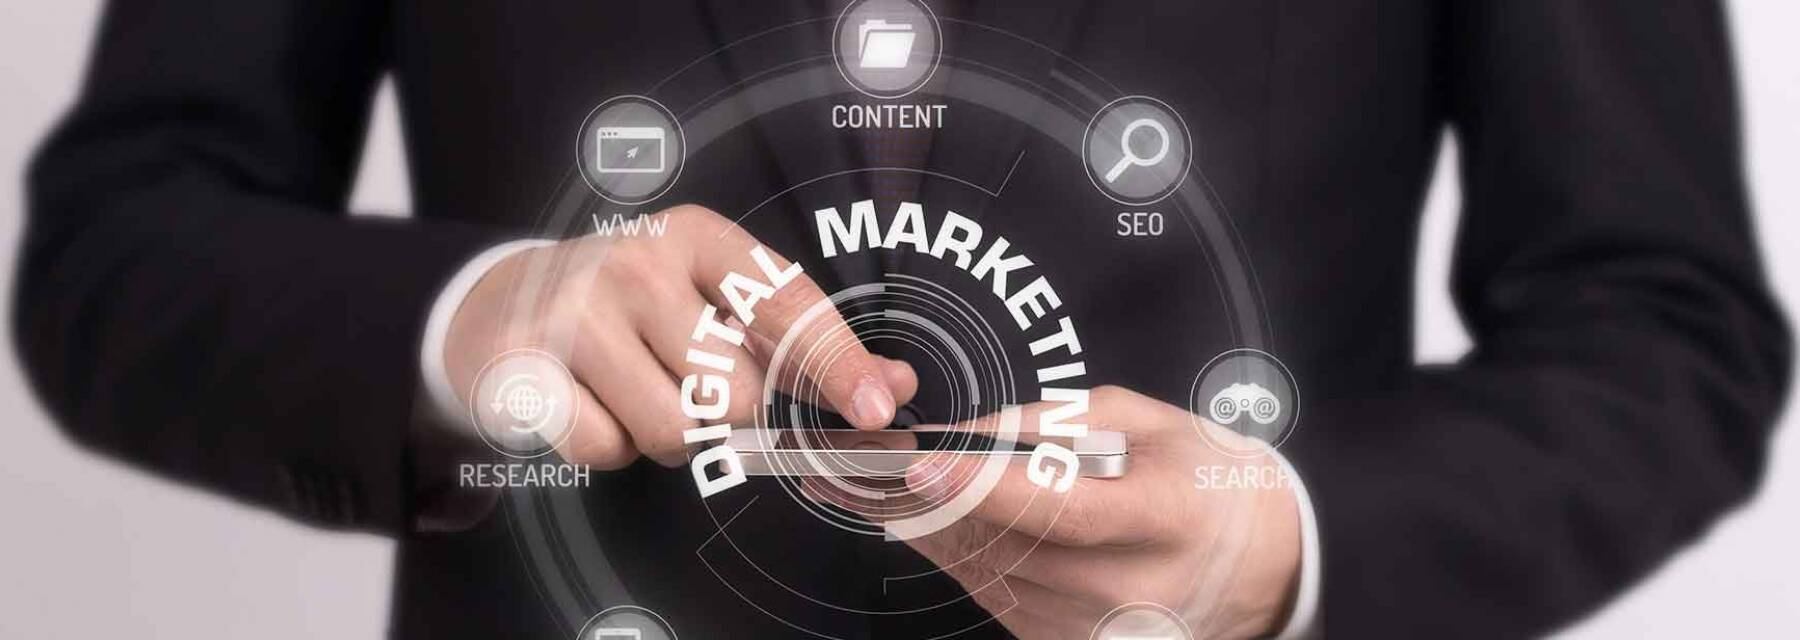 digital-strategy-consulting-services